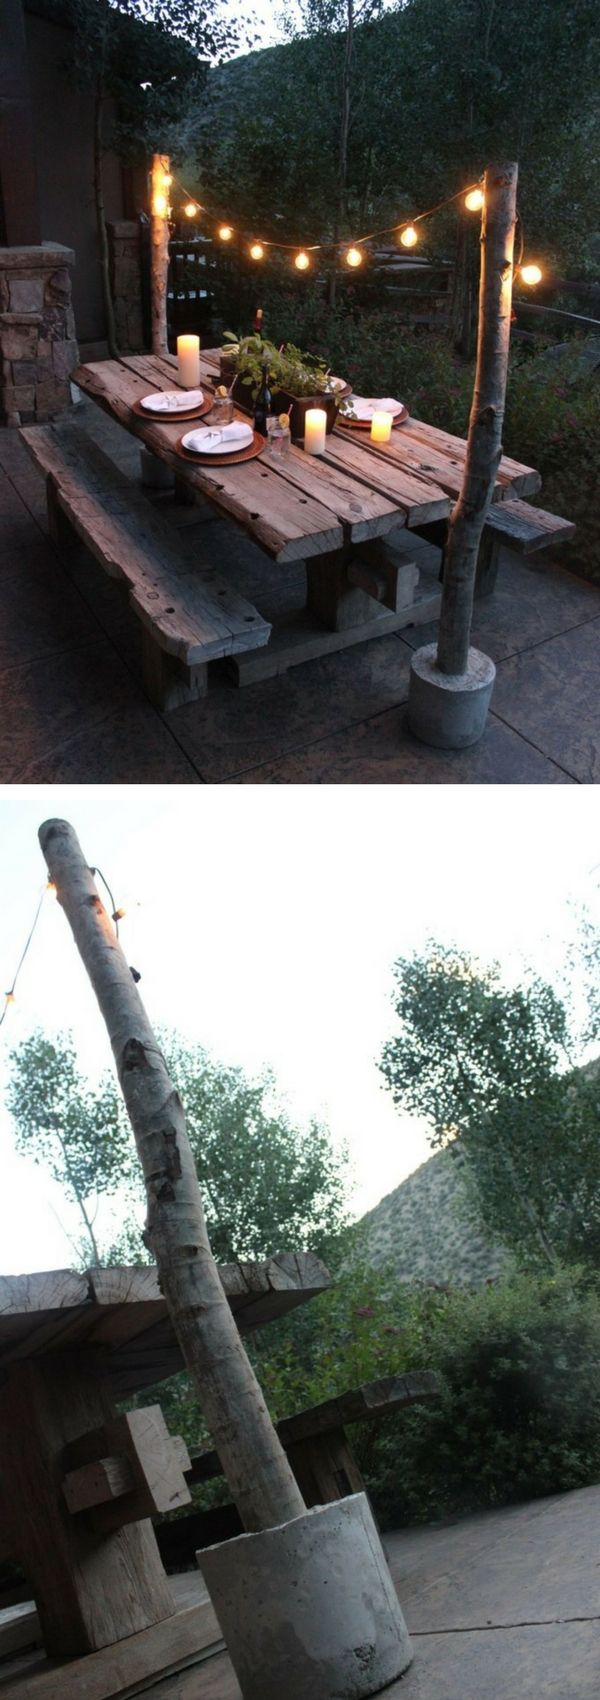 アウトドアの灯りDIYアイディア Check out the tutorial on how to make easy DIY outdoor string light poles @istandarddesign